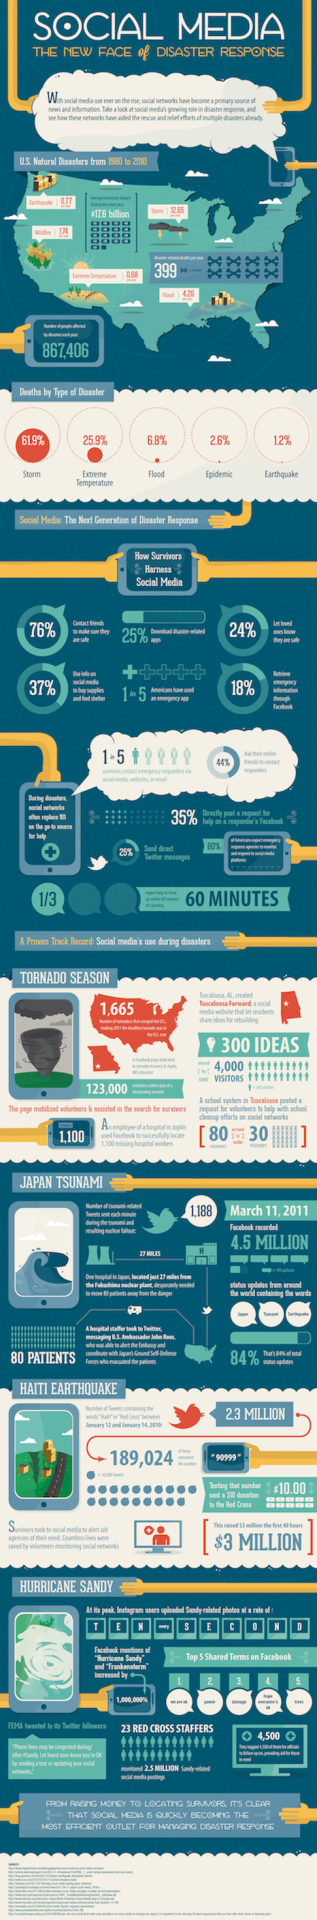 Social Media Is The New Face Of Disaster Response [Infographic]